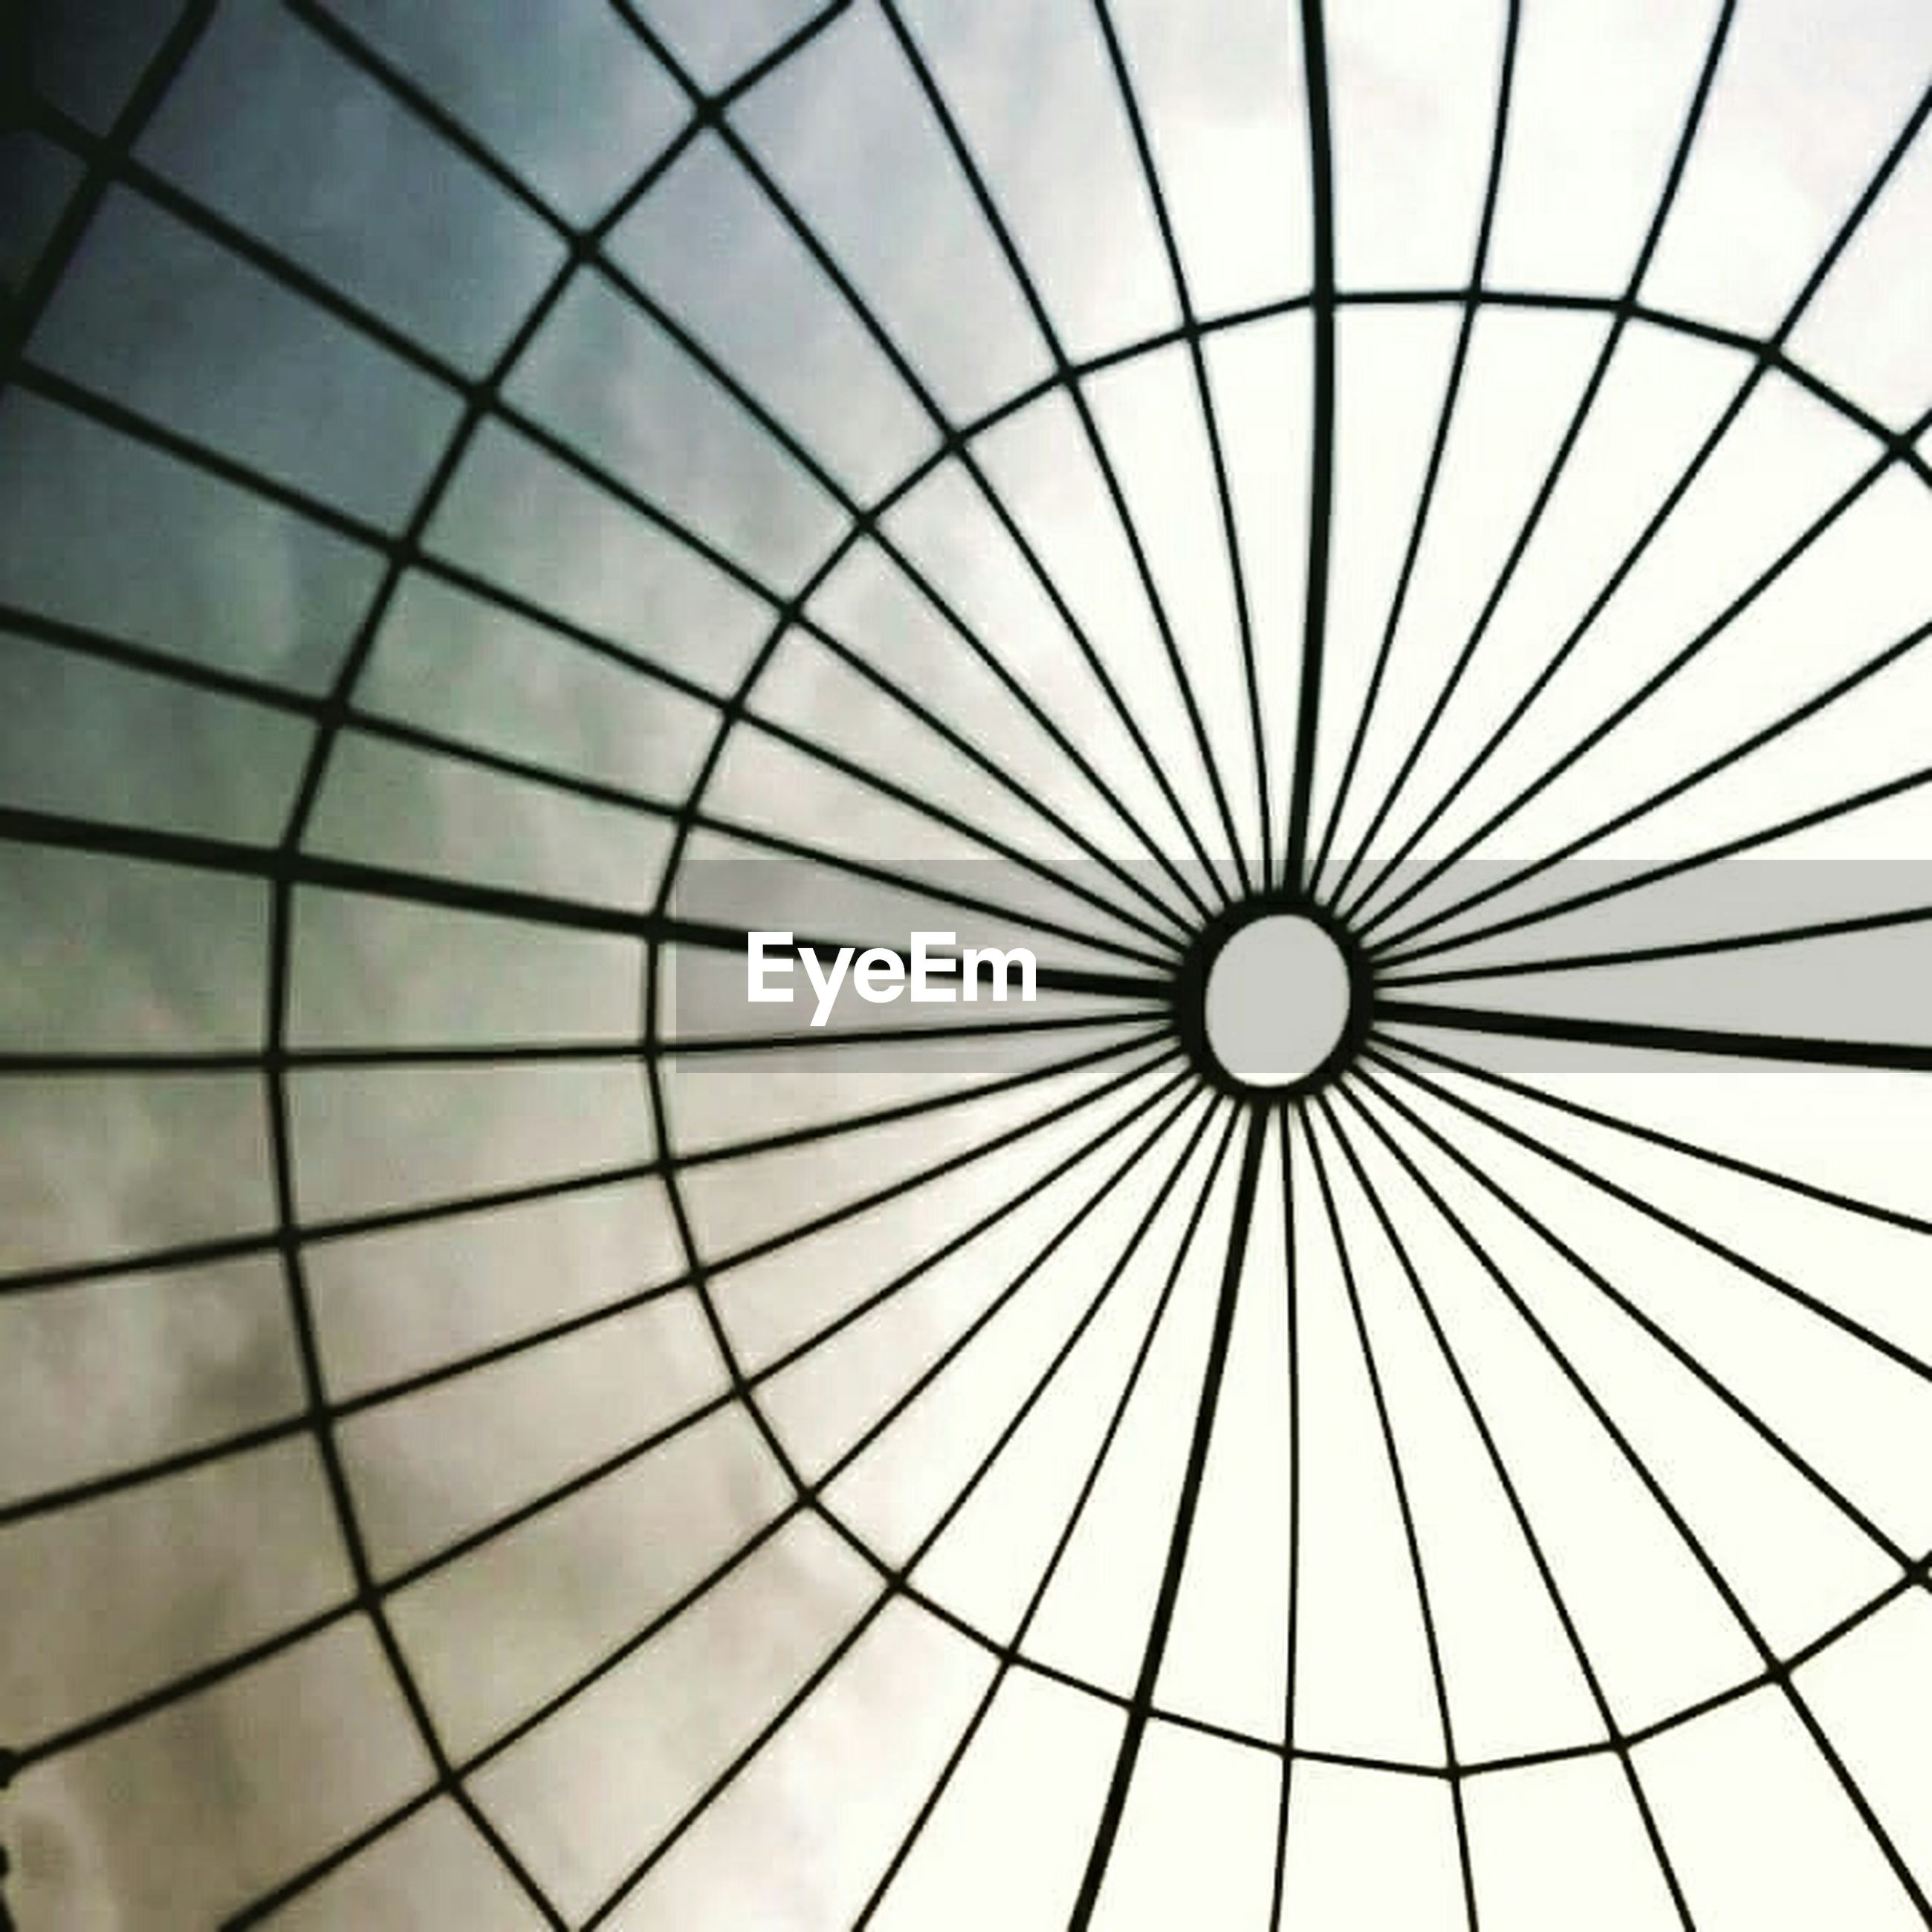 low angle view, ceiling, pattern, architecture, indoors, built structure, design, directly below, geometric shape, modern, full frame, backgrounds, architectural feature, shape, glass - material, skylight, repetition, no people, circle, abstract